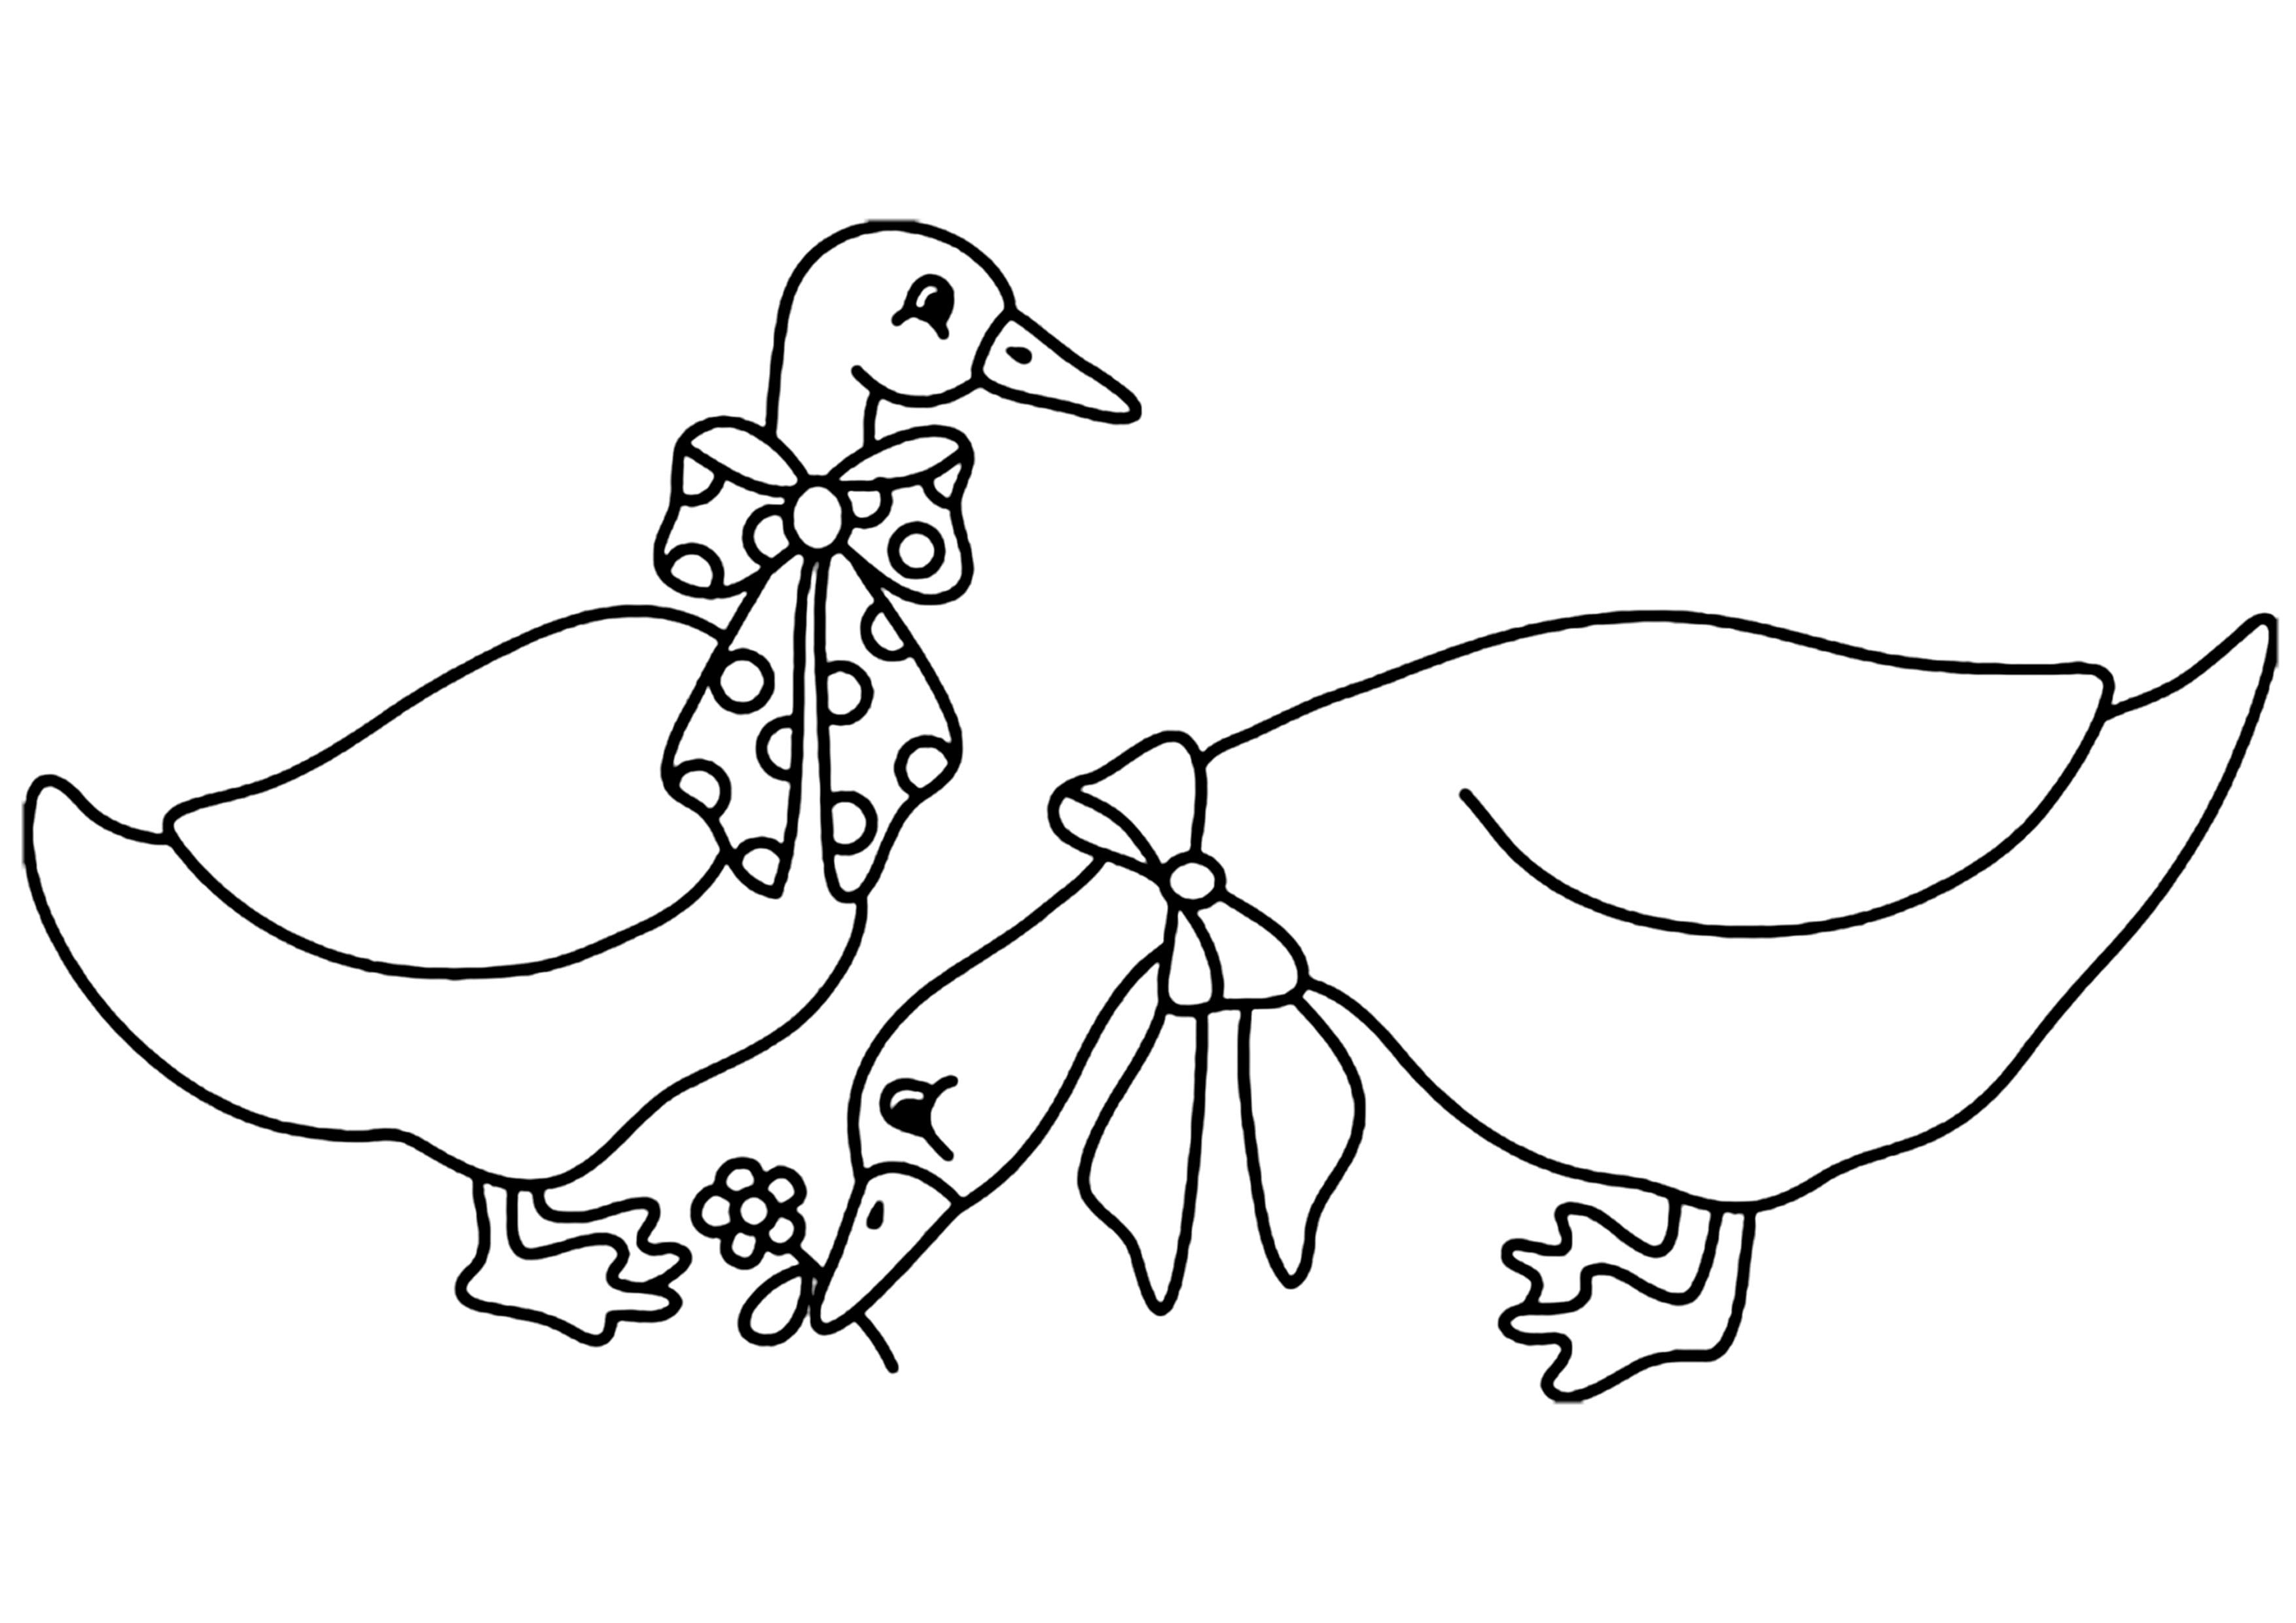 Coloriage - Animaux : Oie 02 - 10 Doigts